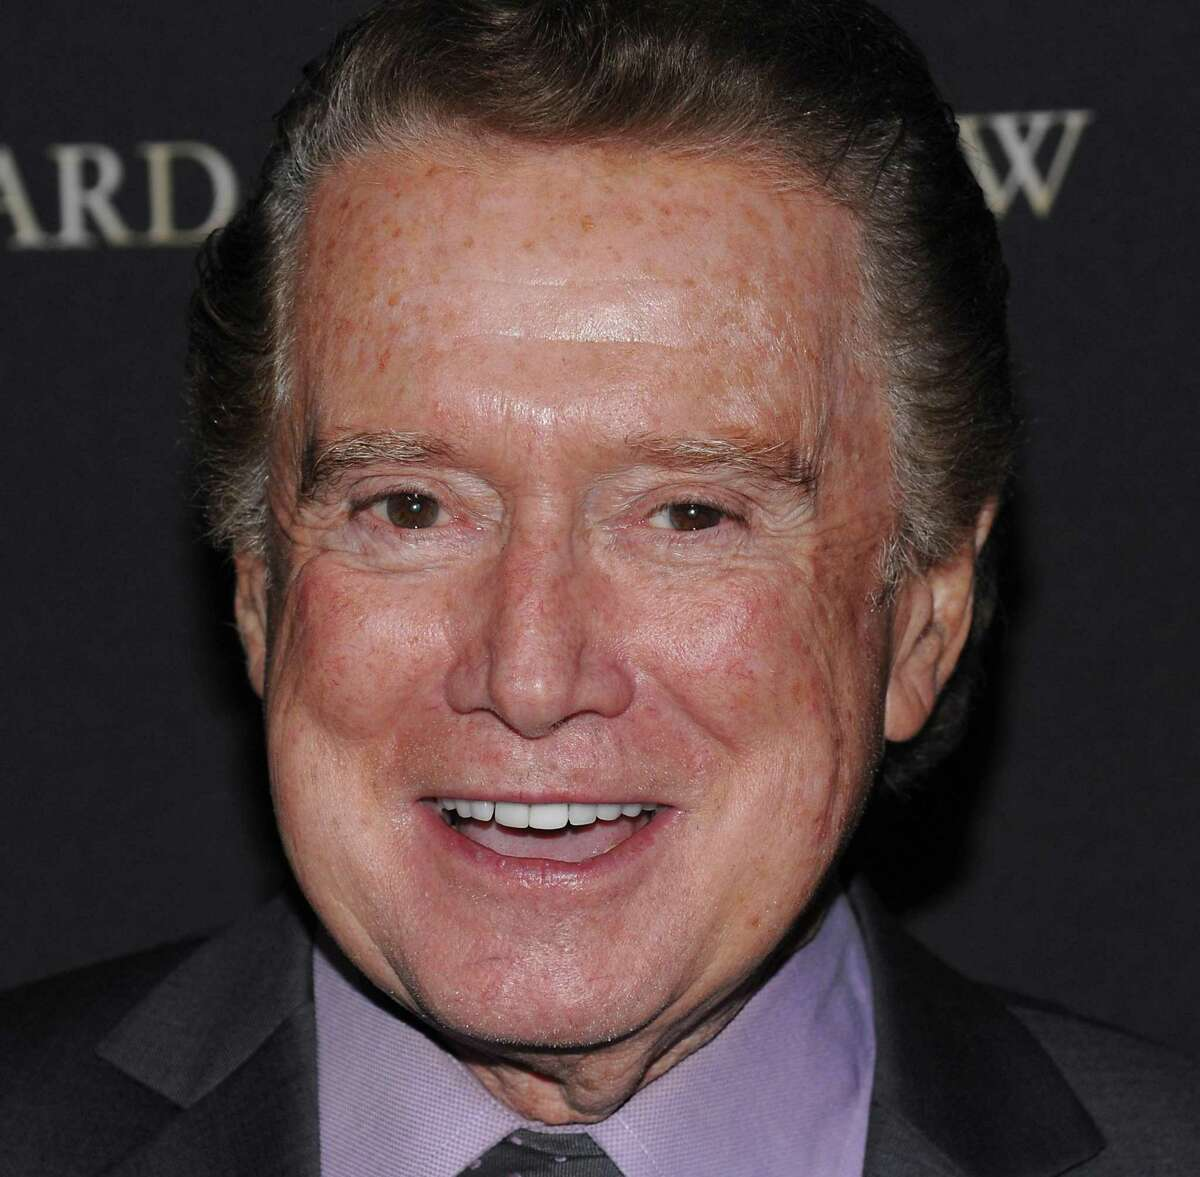 In this Jan. 14, 2009 file photo, Regis Philbin attends the 2008 National Board of Review of Motion Pictures awards gala in New York.